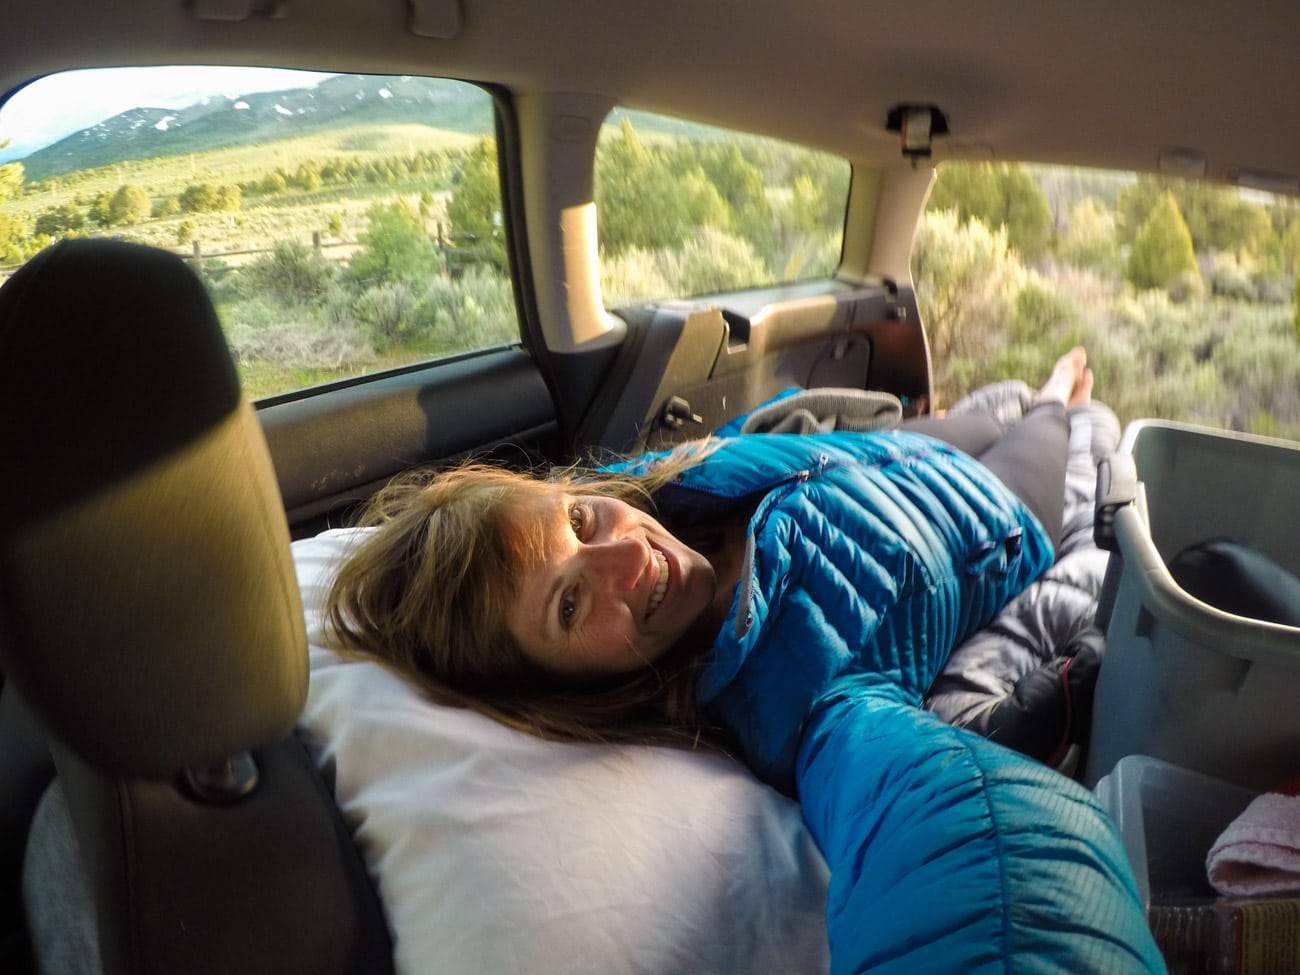 Hit the road with this solo road trip planning guide for women traveling alone including how to plan, what to pack, and tips for staying safe.